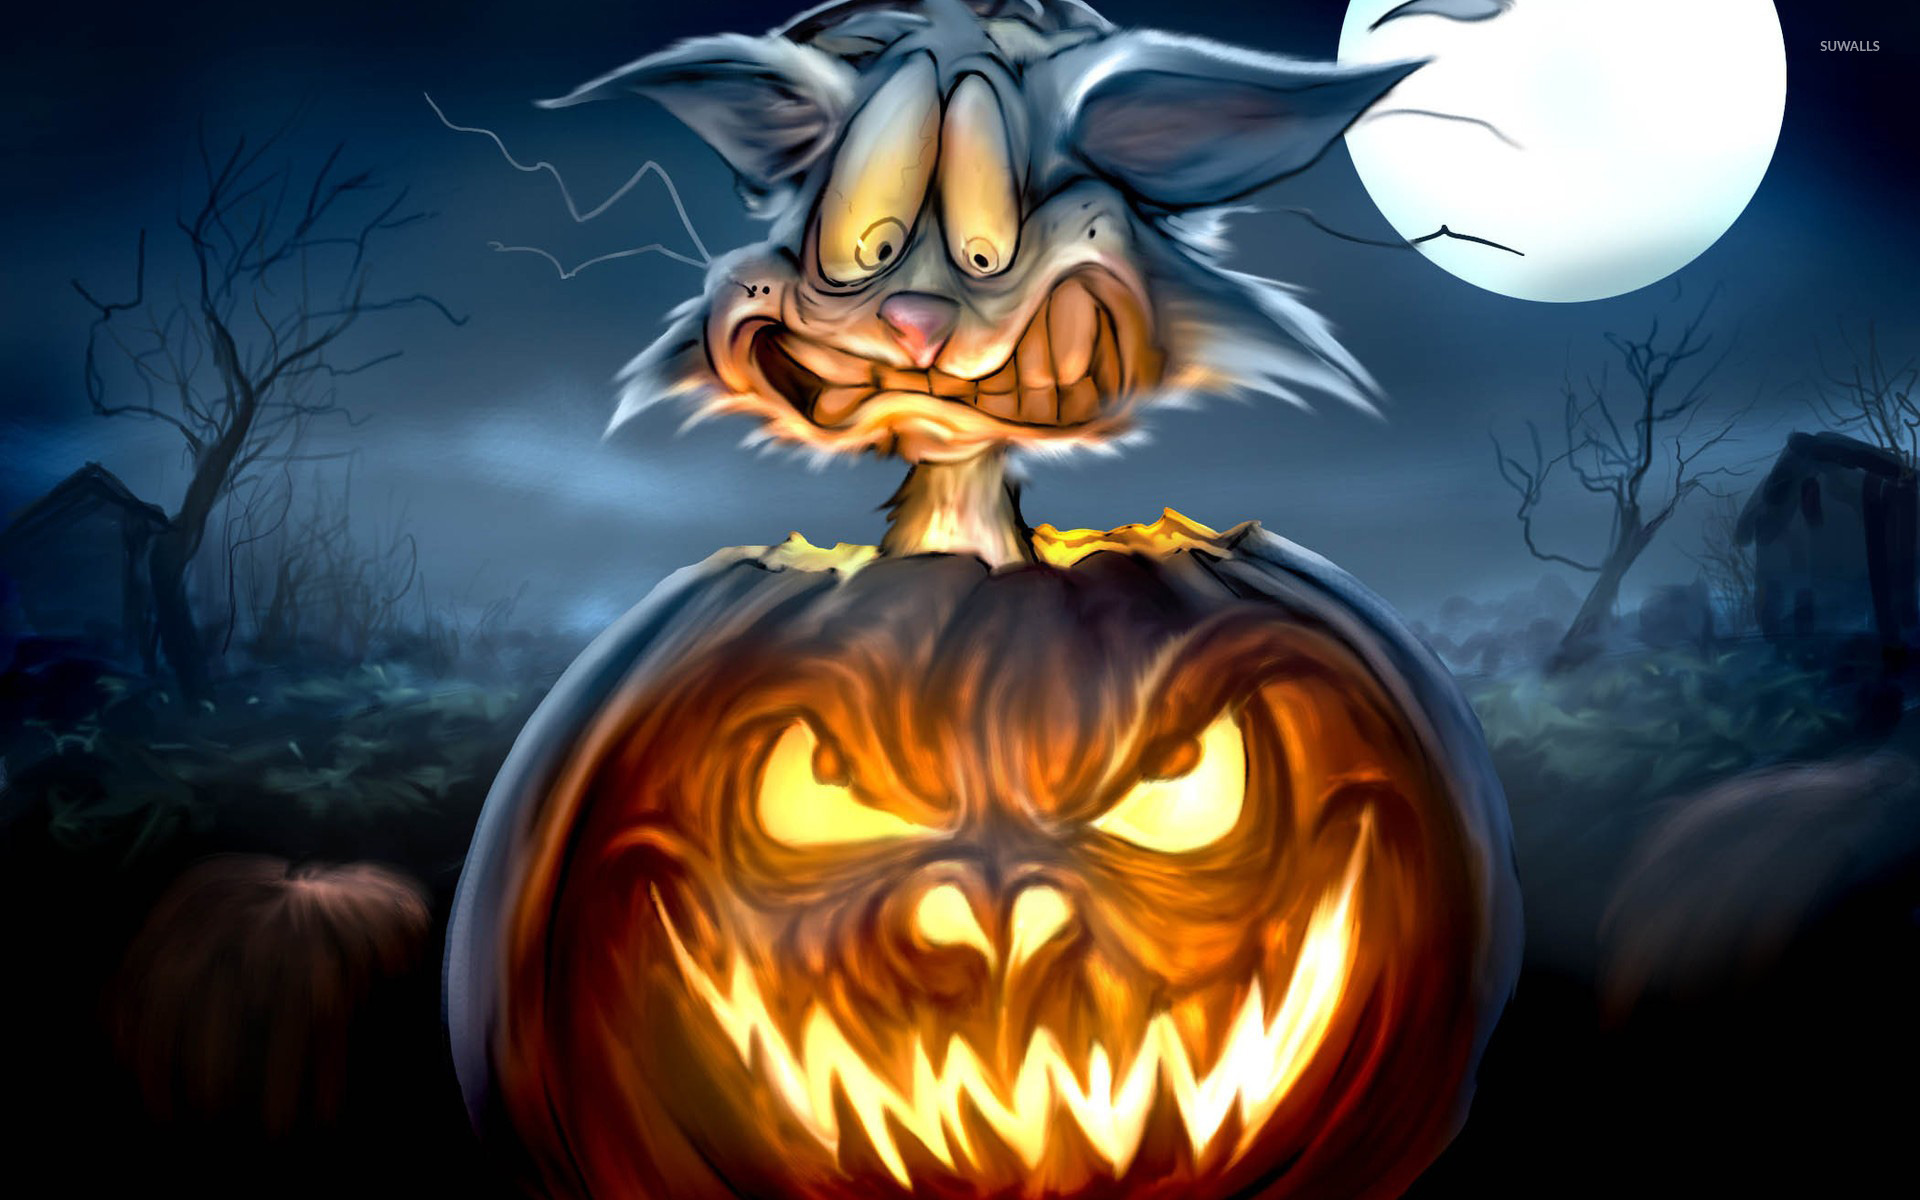 scared cat in a jack-o'-lantern wallpaper - holiday wallpapers - #24365